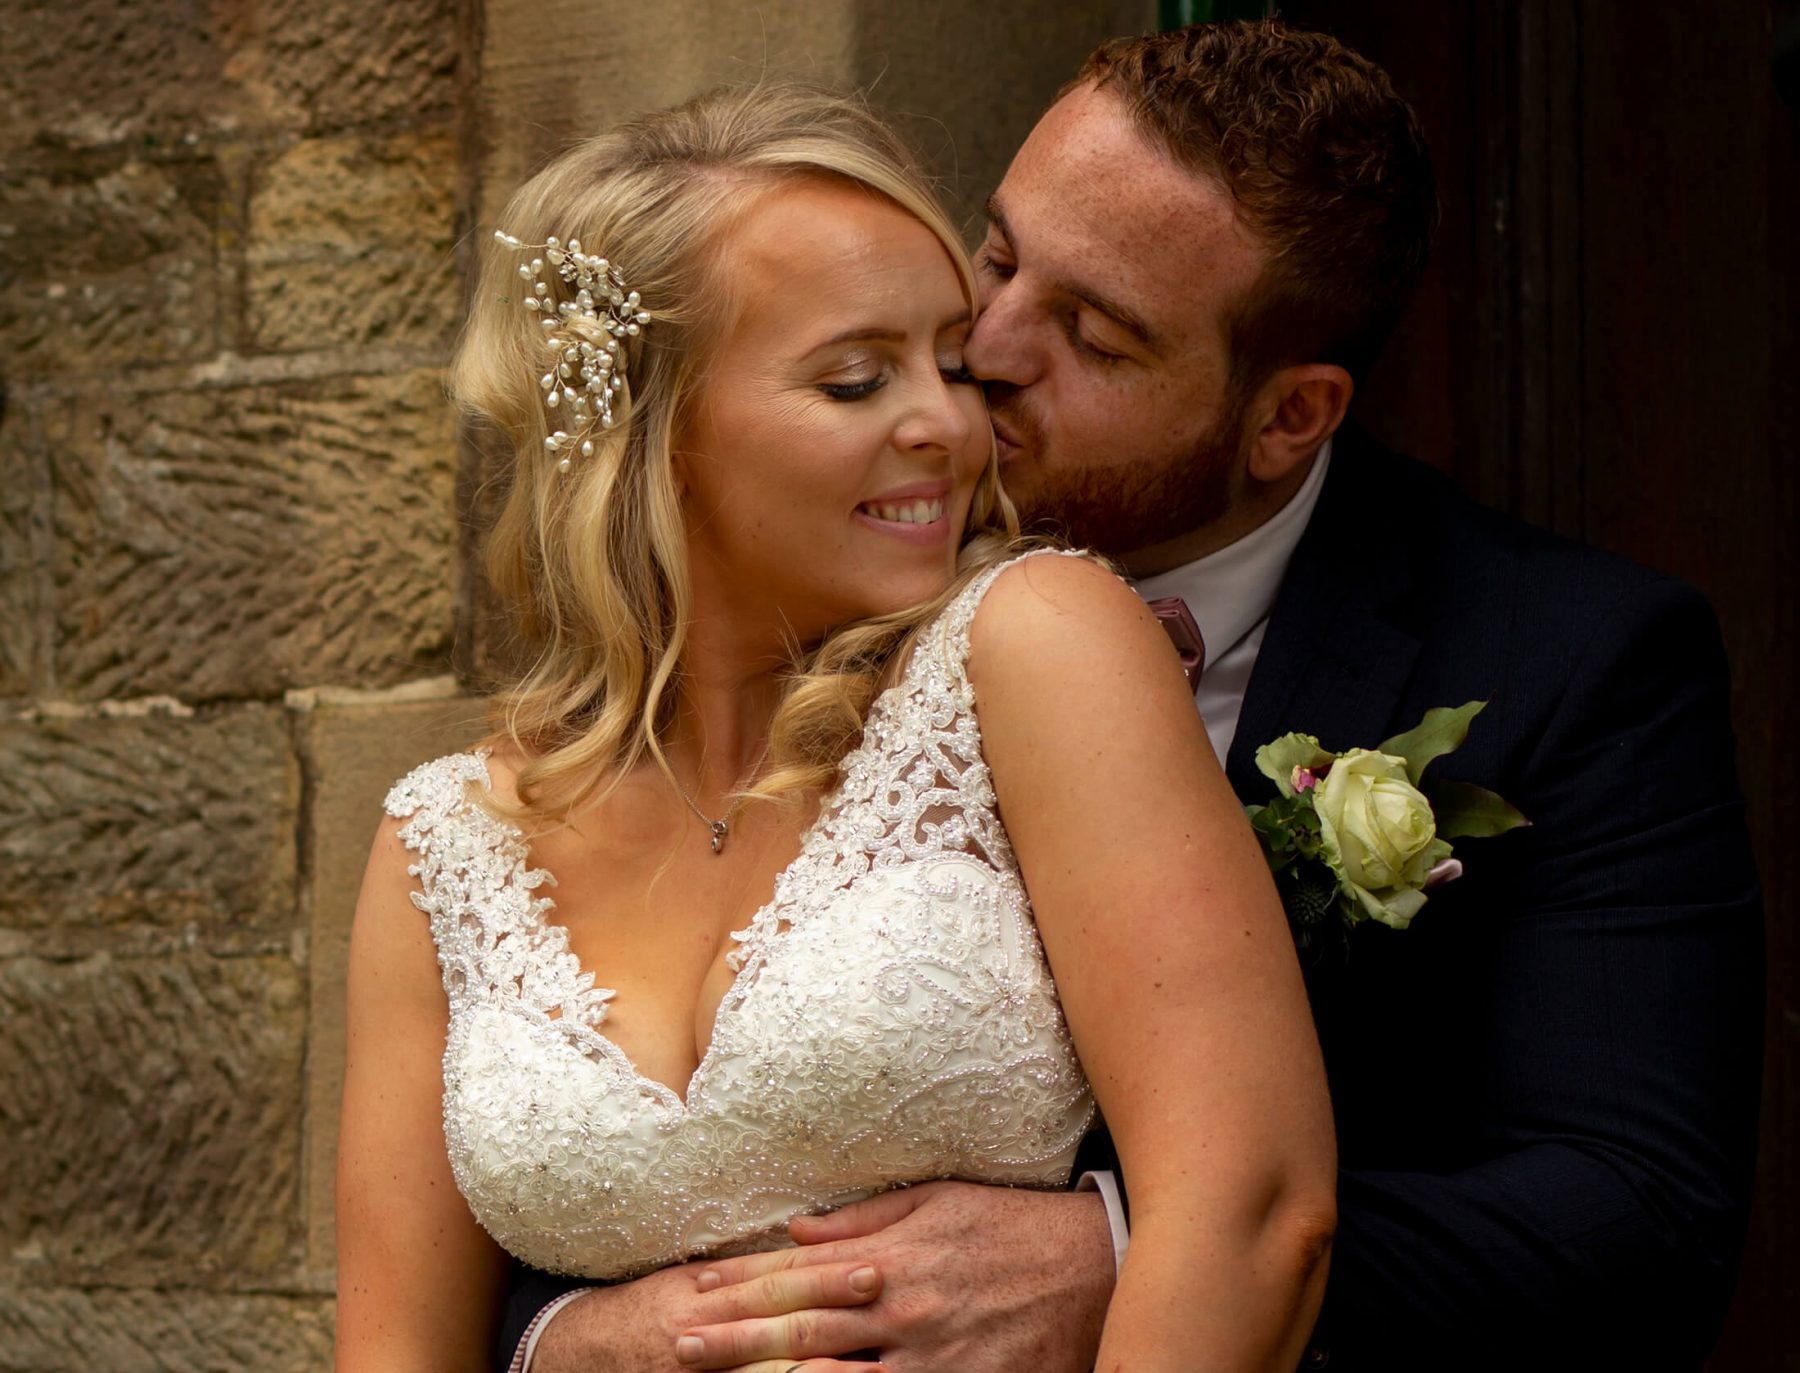 A portrait of a bride and groom sharing a kiss